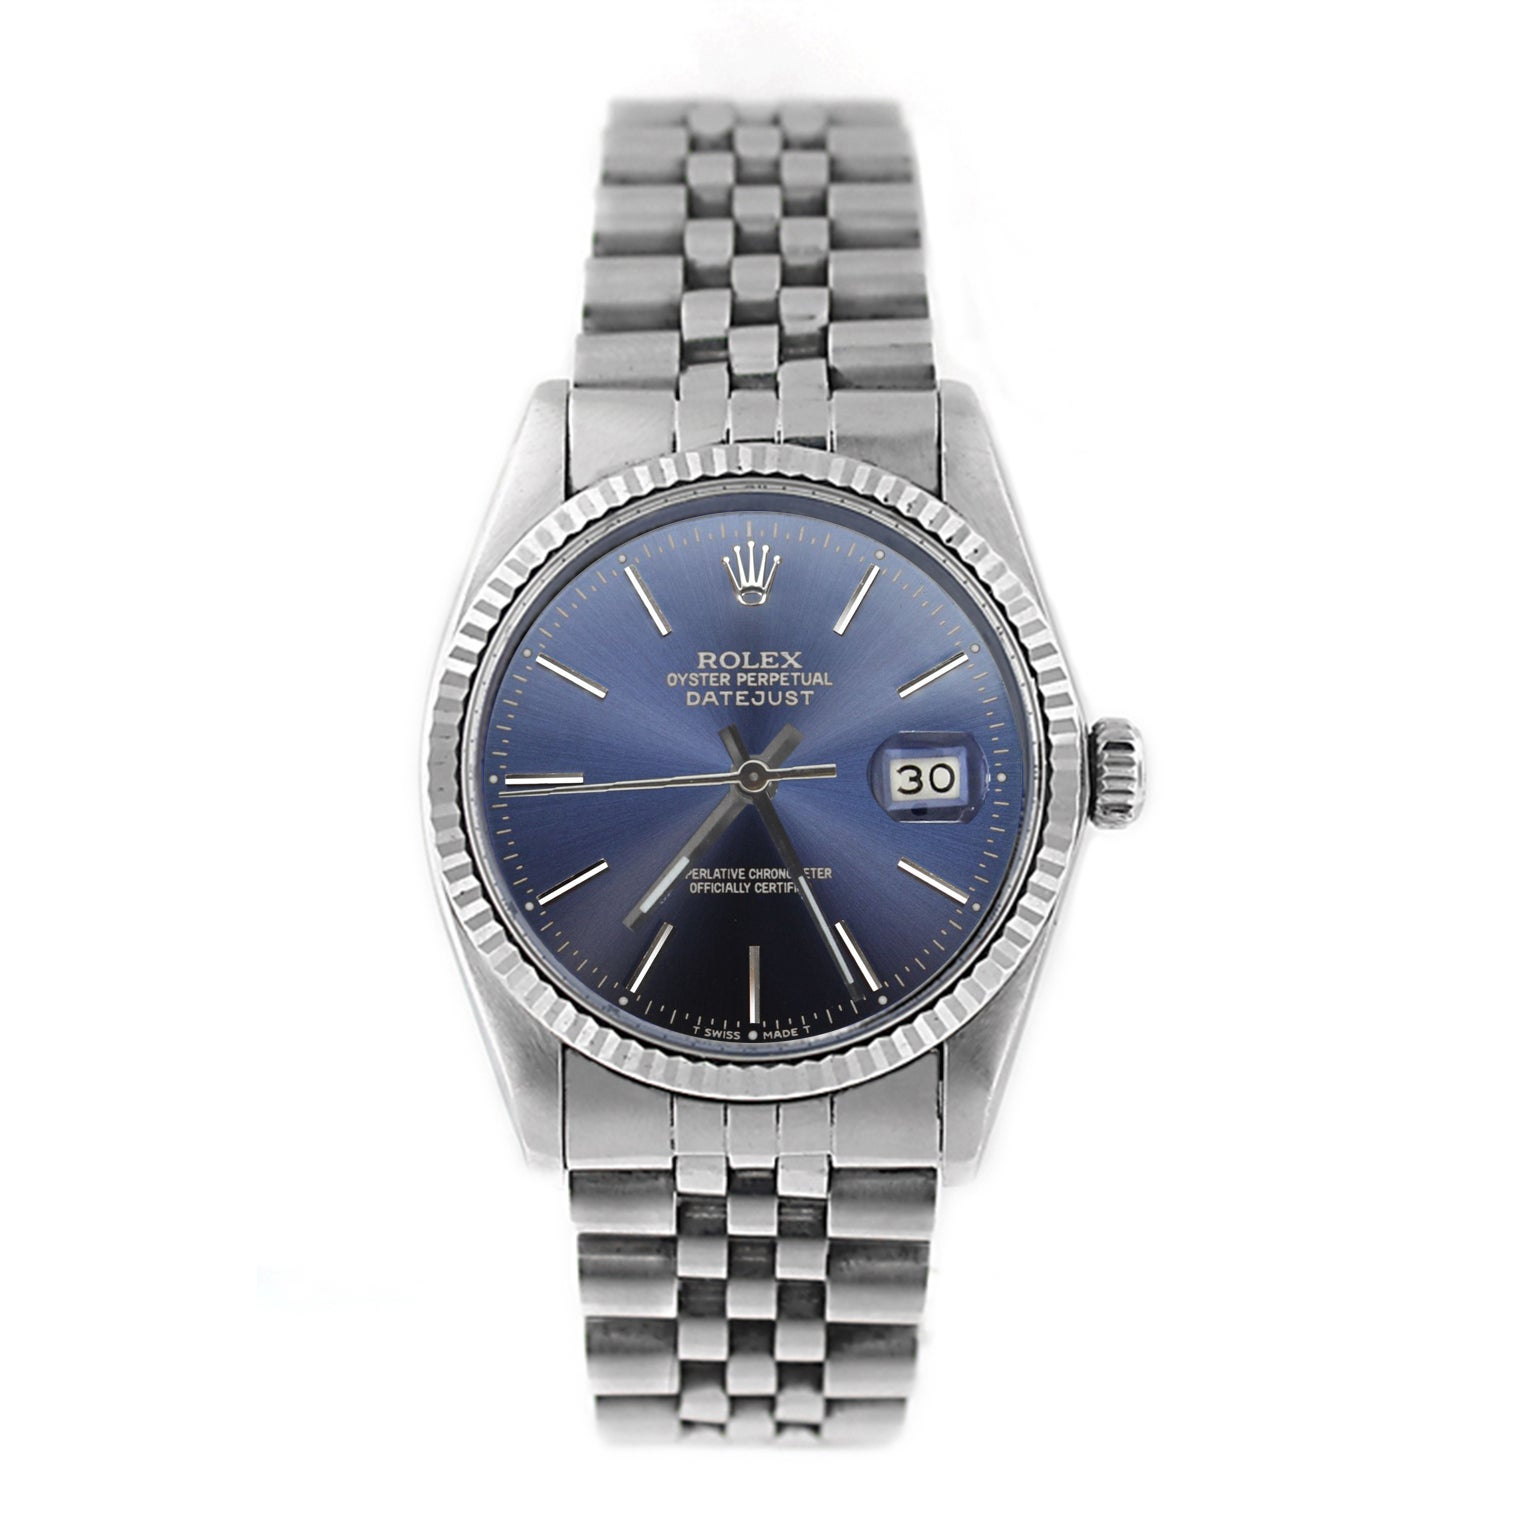 Pre,Owned Rolex Men\u0027s Datejust 16014 Stainless Steel Blue Stick Watch